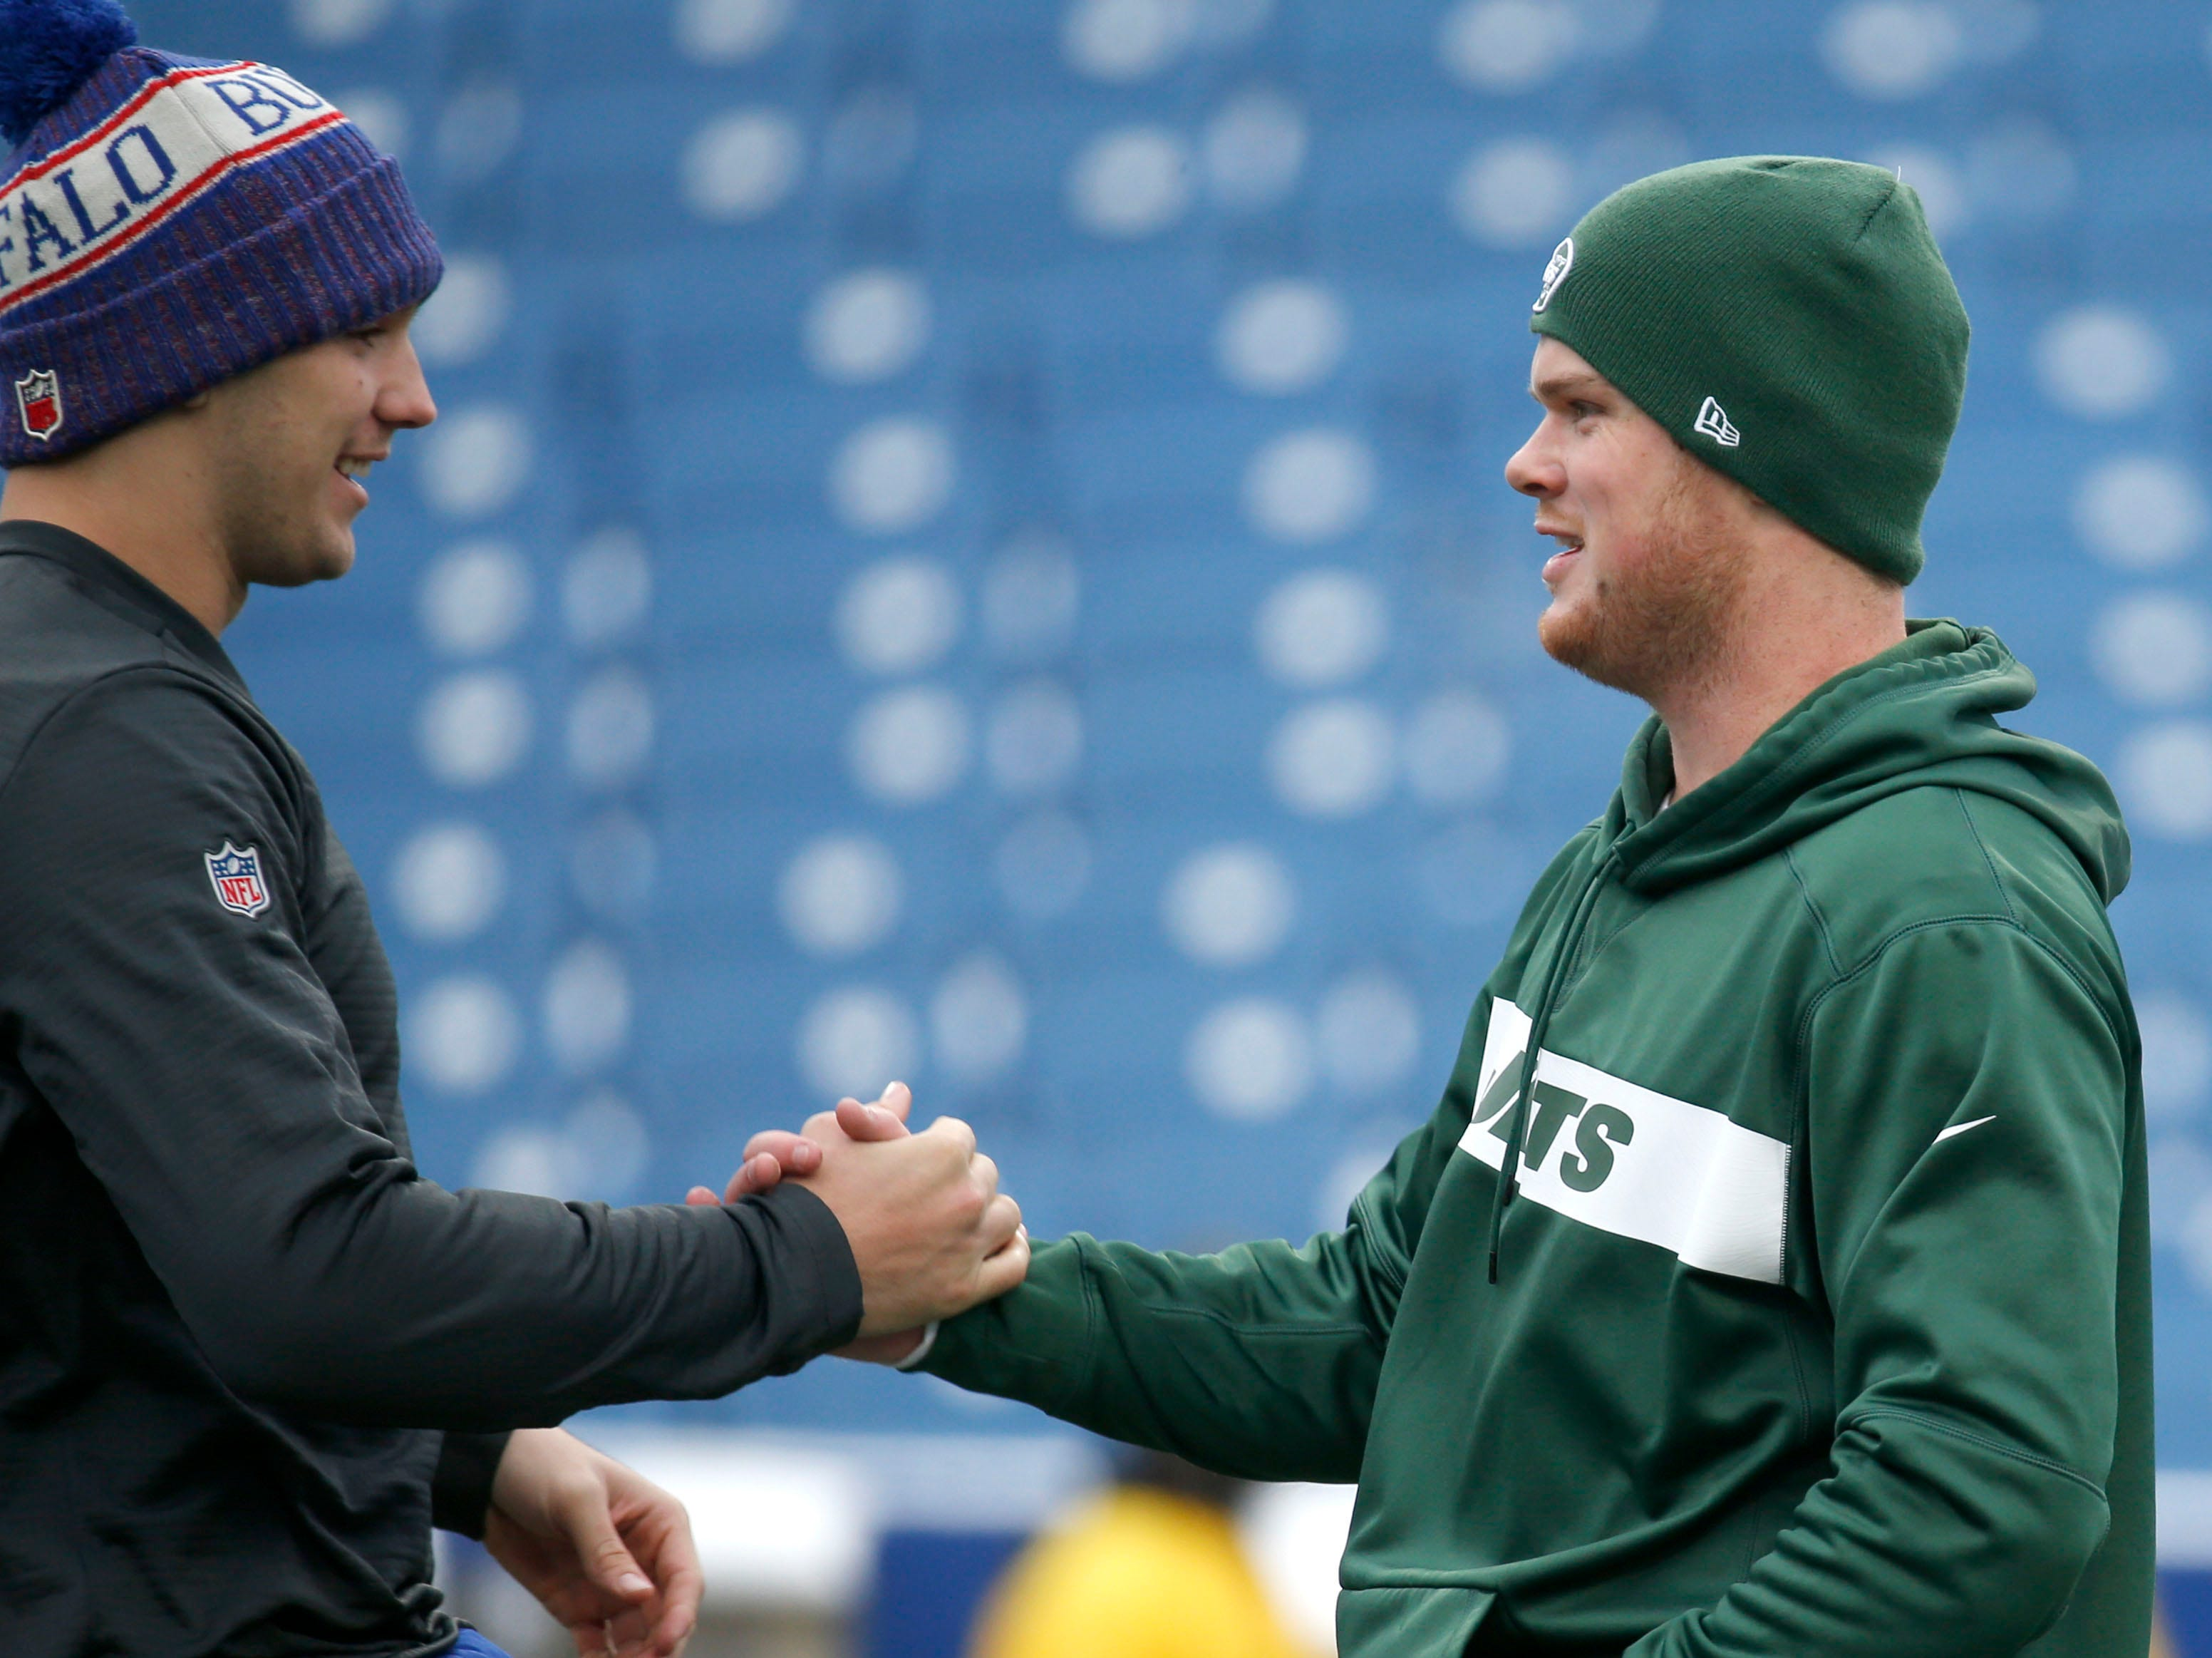 Dec 9, 2018; Orchard Park, NY, USA; Buffalo Bills quarterback Josh Allen (17) and New York Jets quarterback Sam Darnold (14) on the field before a game at New Era Field. Mandatory Credit: Timothy T. Ludwig-USA TODAY Sports